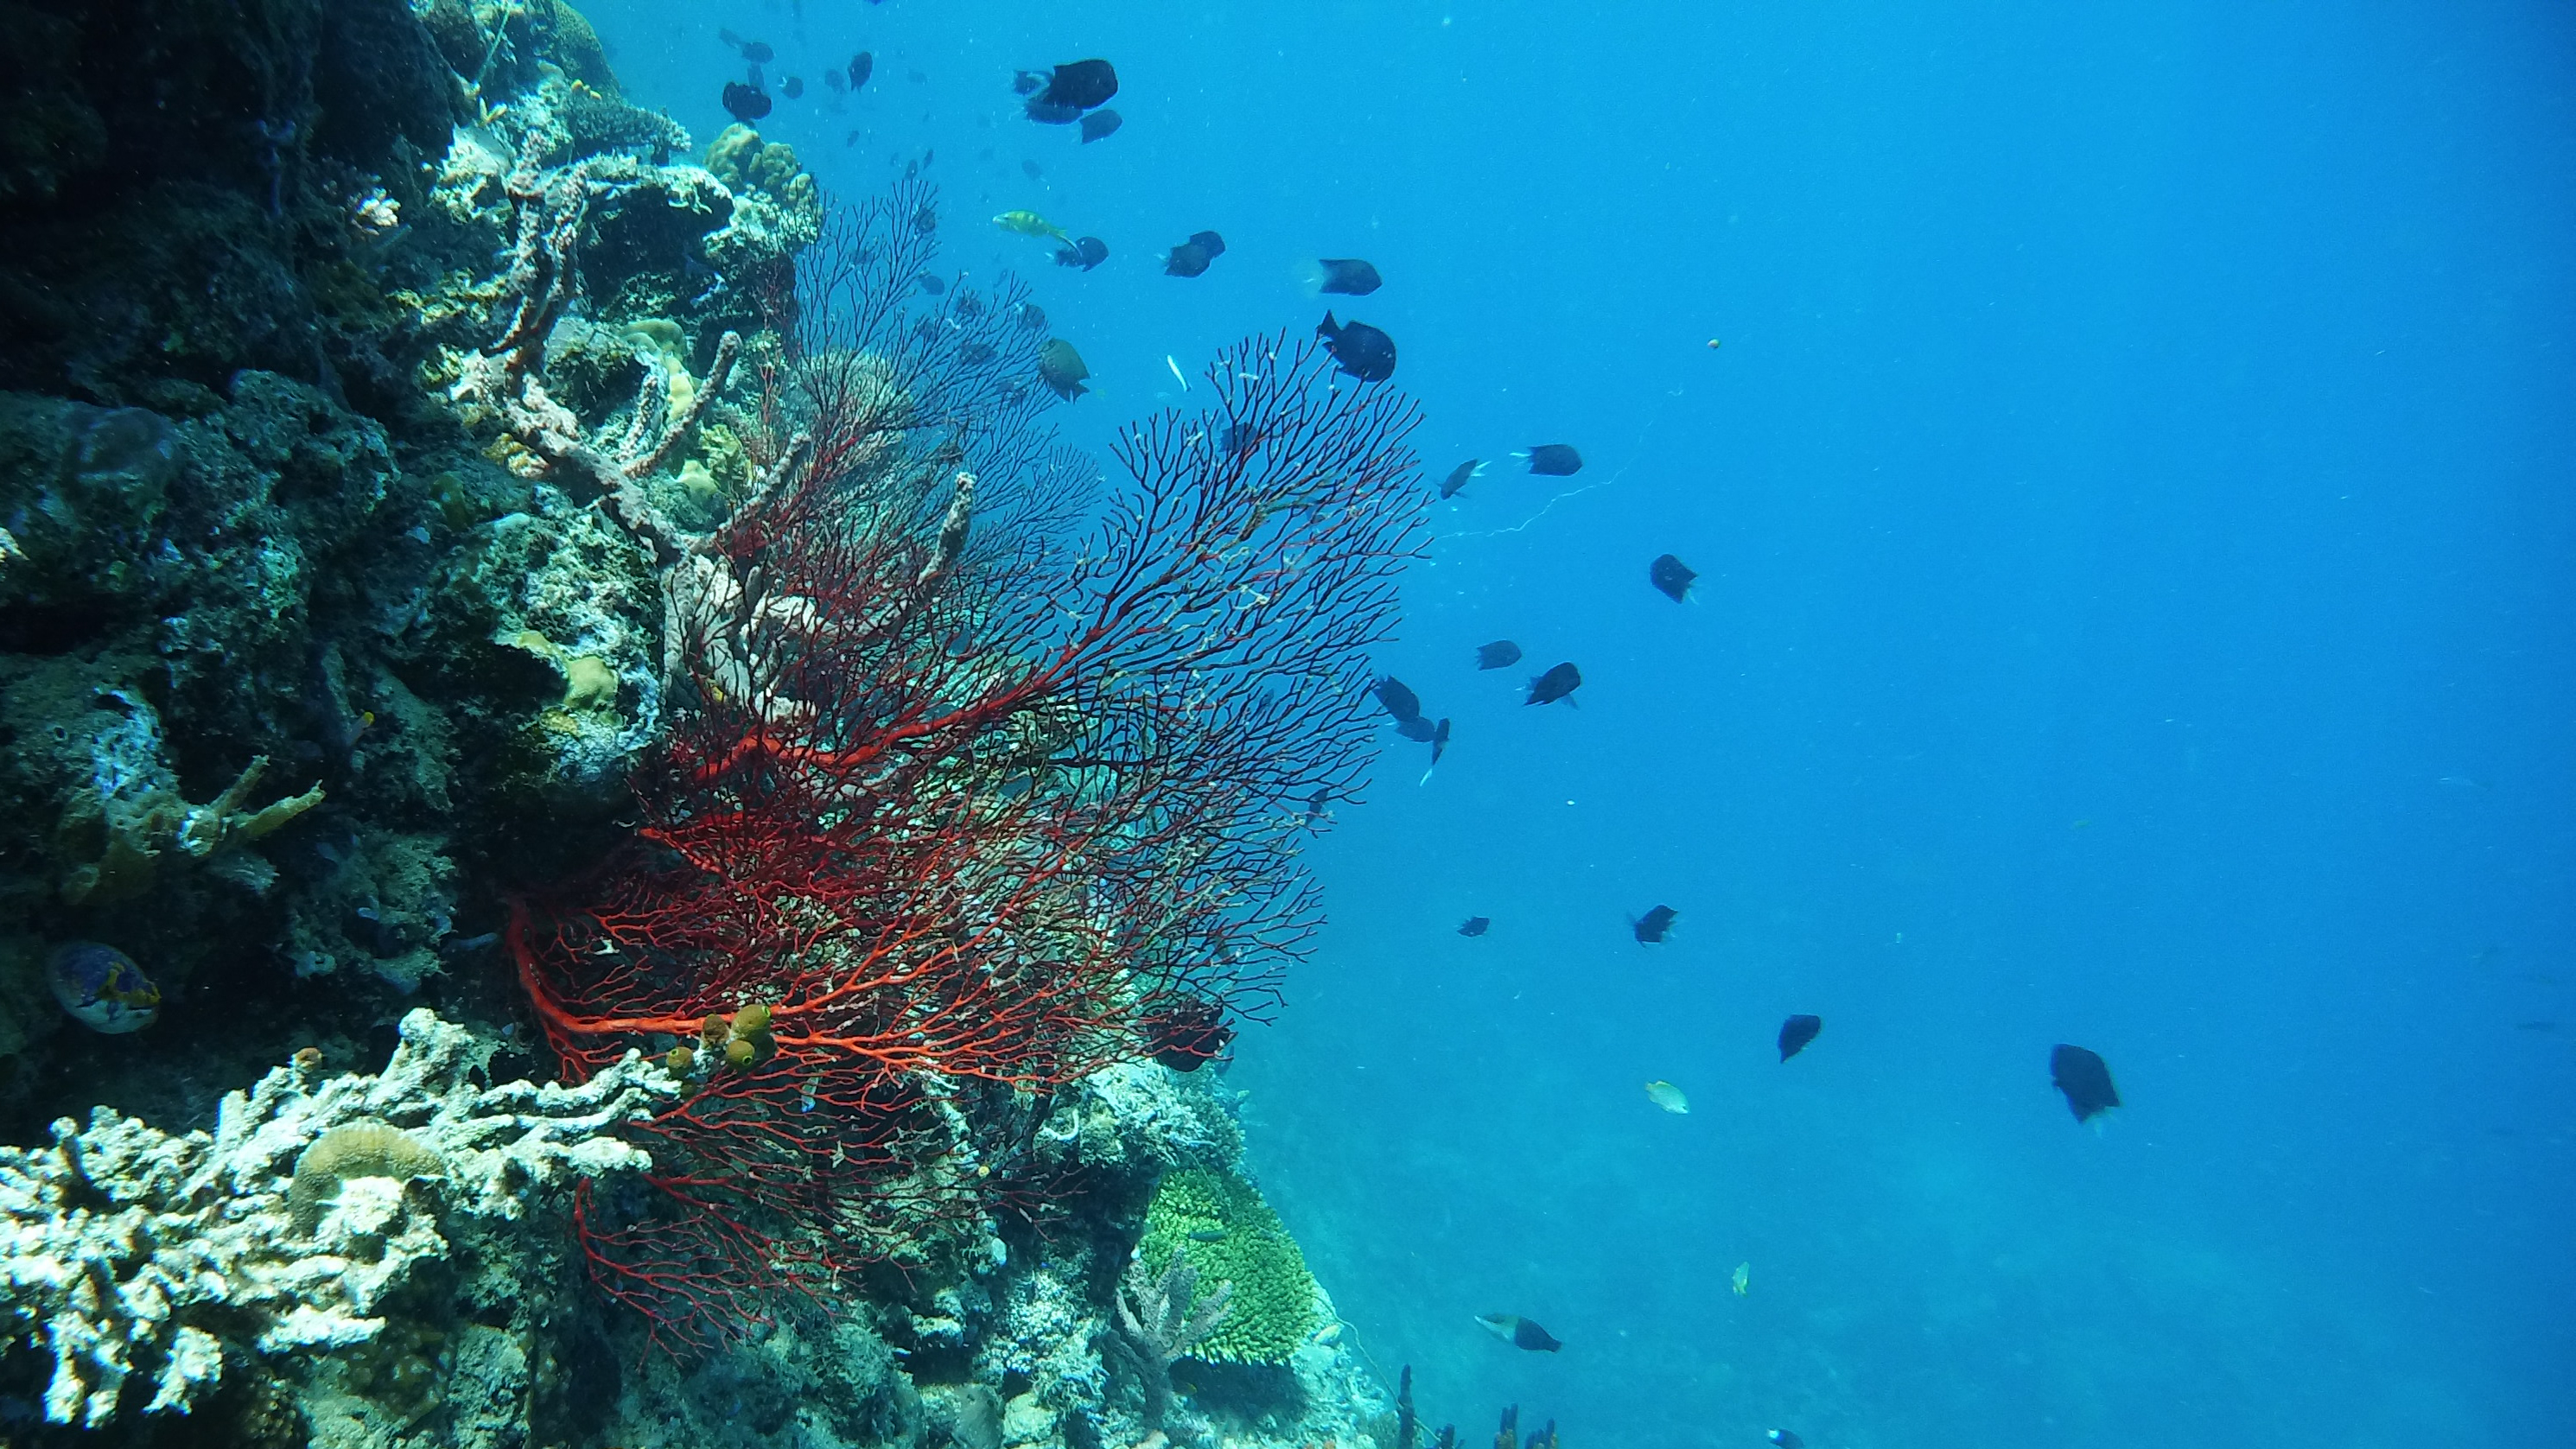 A gorgonian sea fan (Renato Granieri/PA)